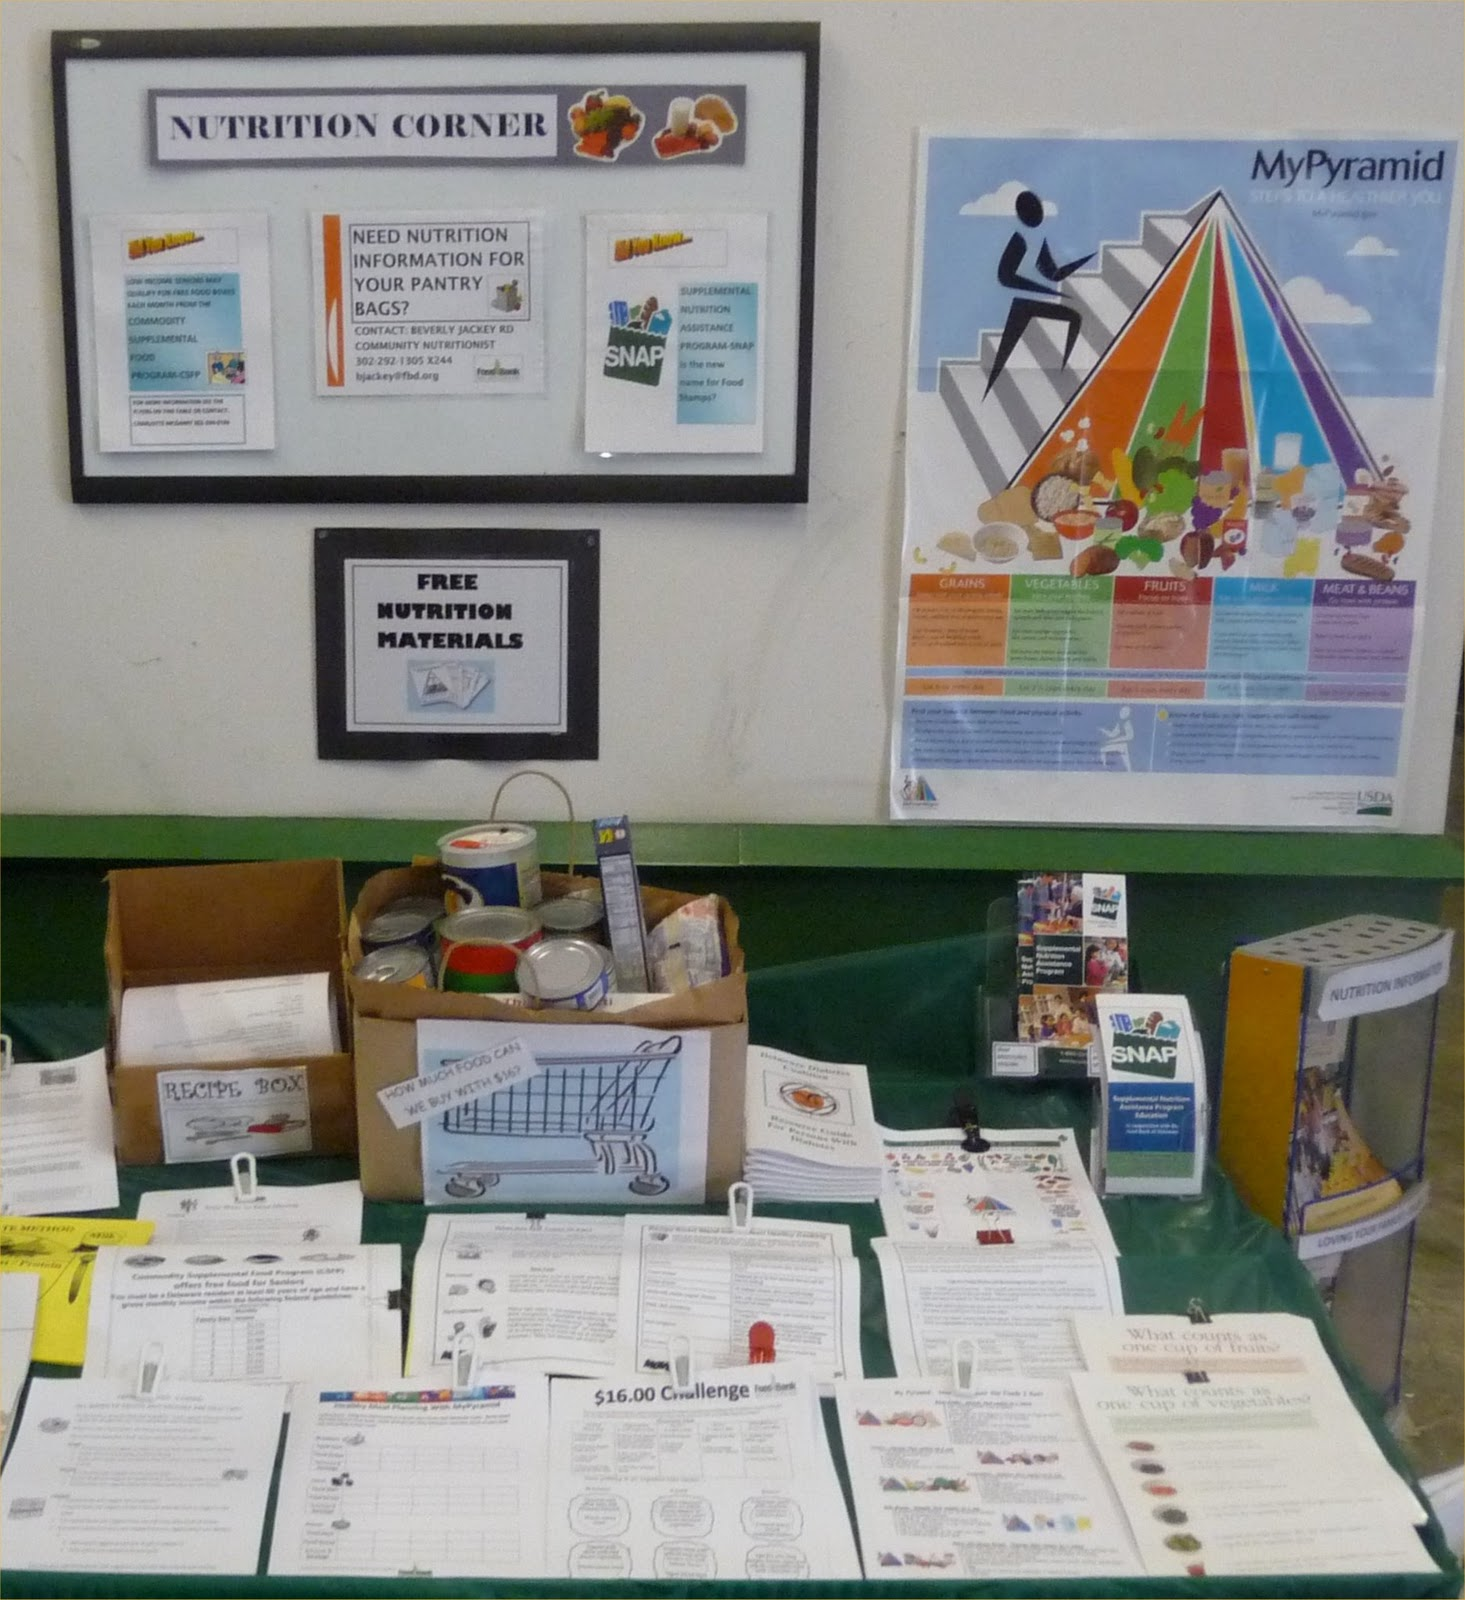 Check Out Mypyramid To See Materials Such As Posters, Multimedia  Presentations, And Interactive Tools The Food Bank Uses These Materials In  Their